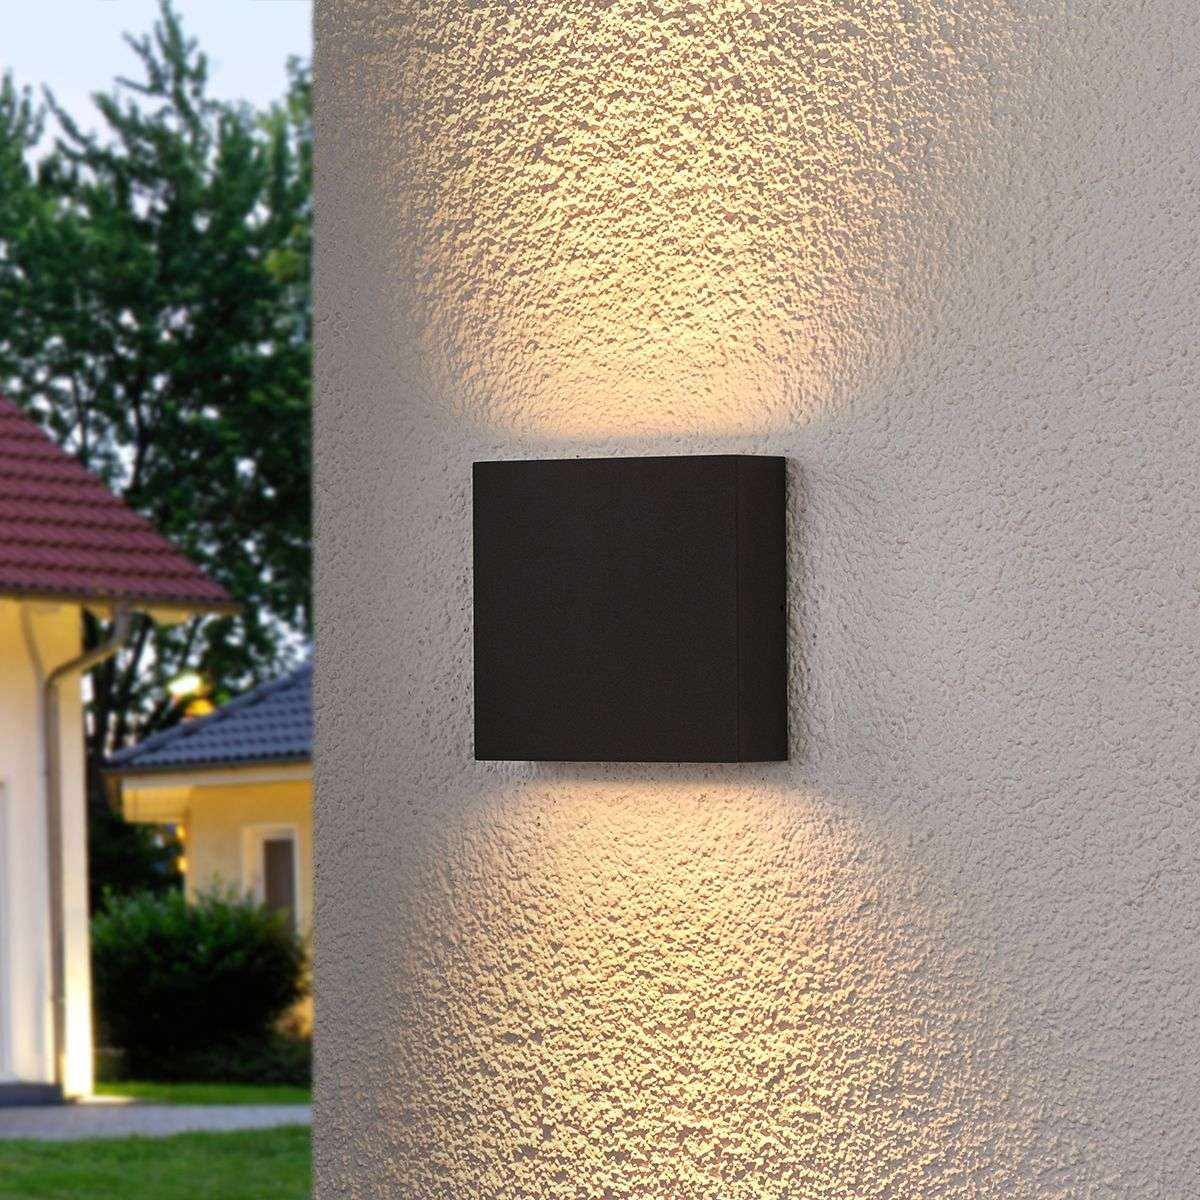 Square led outdoor wall light trixy graphite grey lights square led outdoor wall light trixy graphite grey 9619075 31 mozeypictures Choice Image